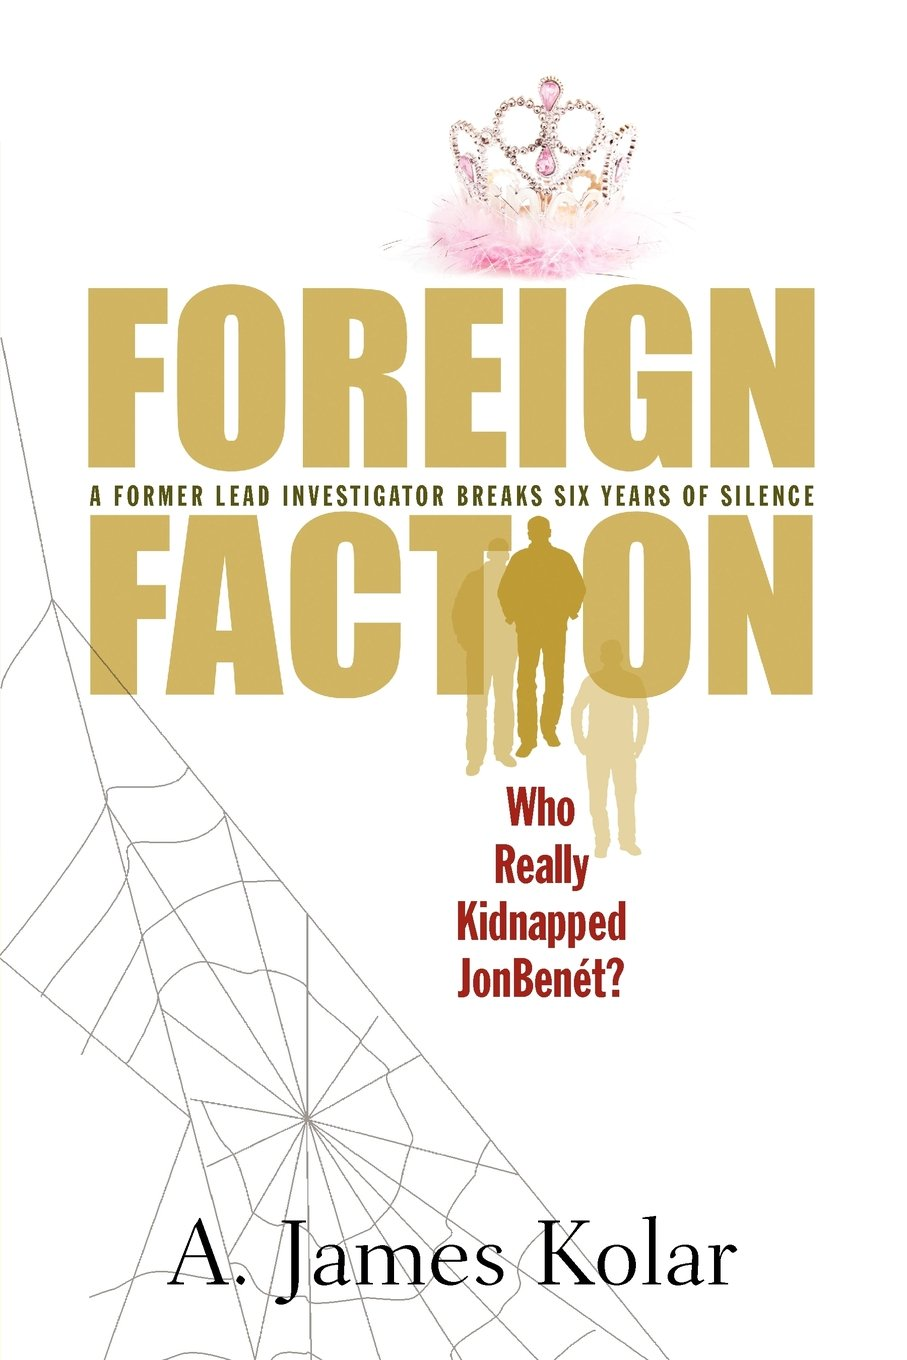 Foreign Faction - Who Really Kidnapped JonBenet?